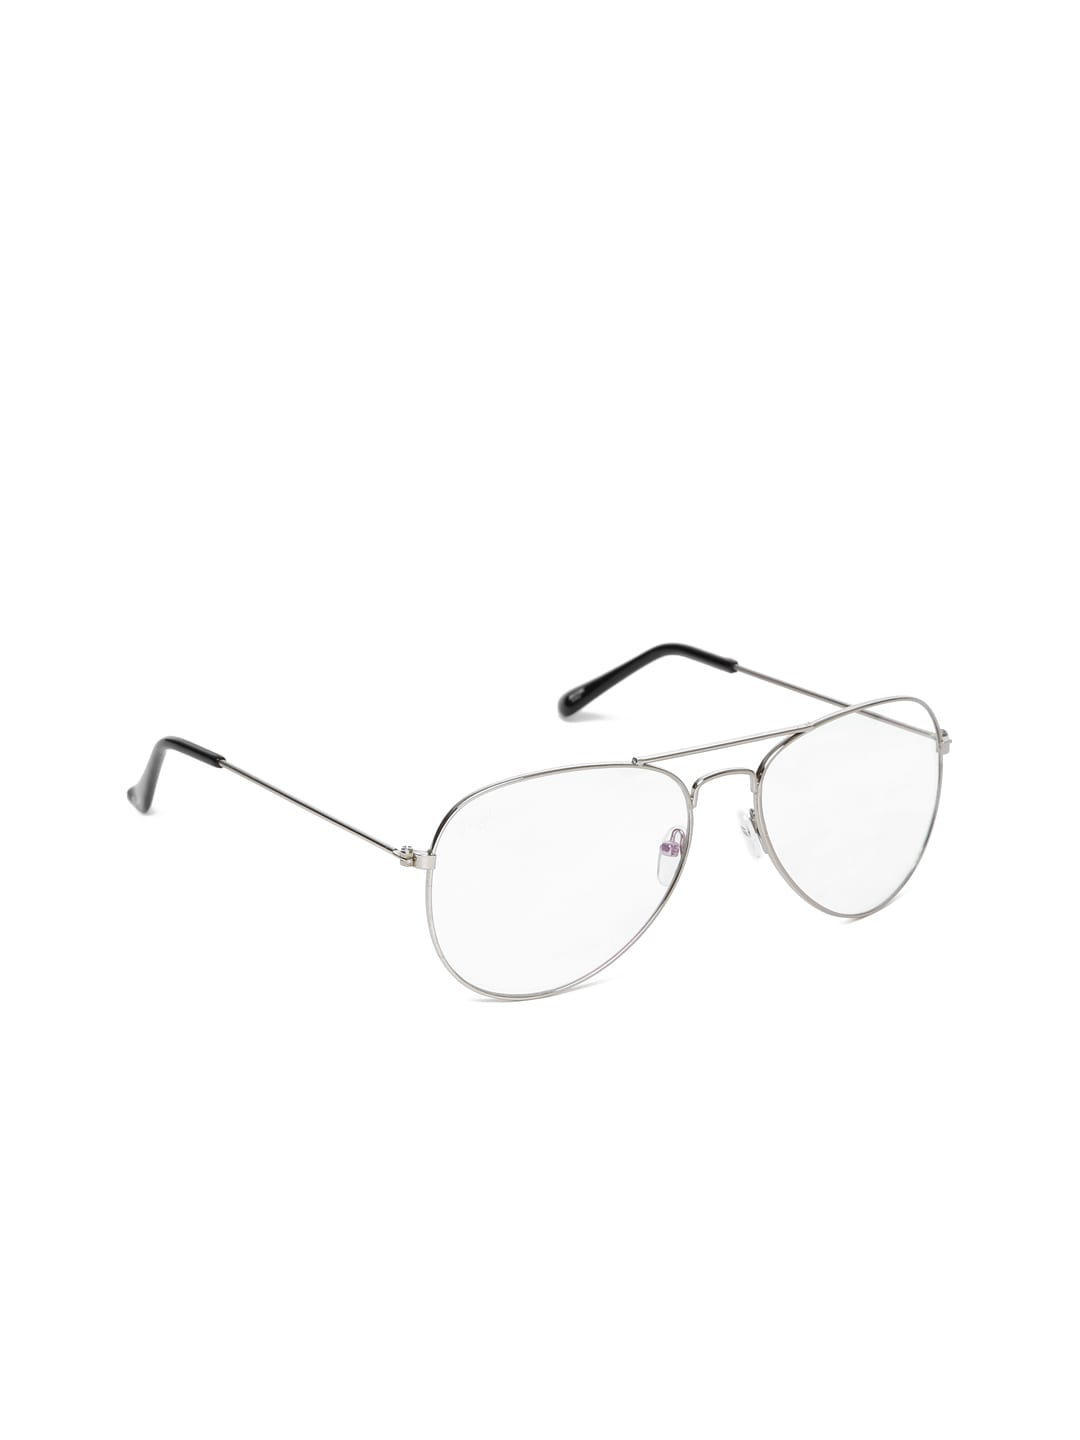 fefe03ff809 Sunglasses For Women - Buy Womens Sunglasses Online